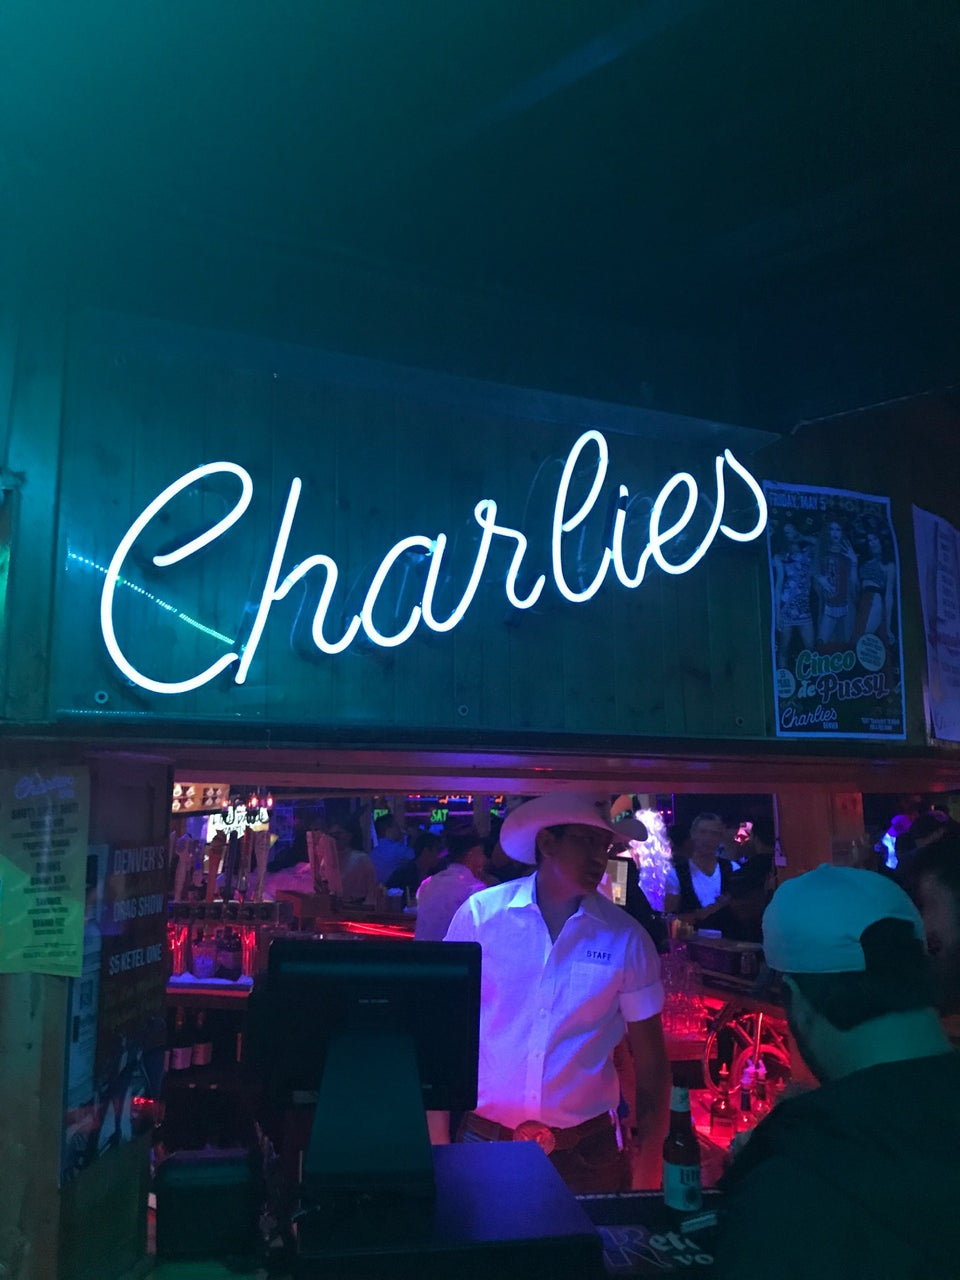 Photo of Charlie's Denver